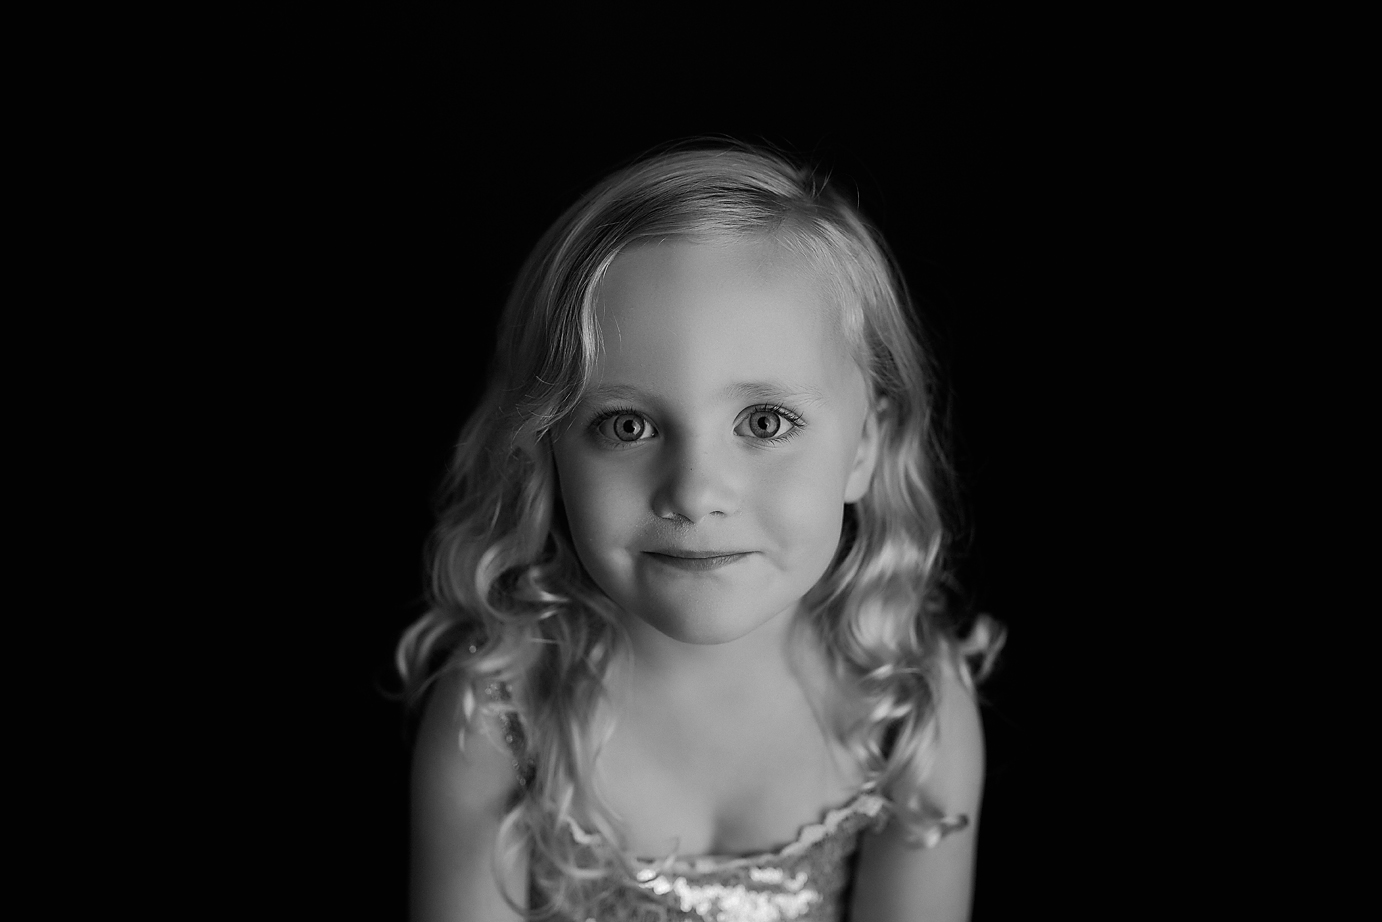 oc-child-photographer-black-and-white-mood-simple-headshot.jpg